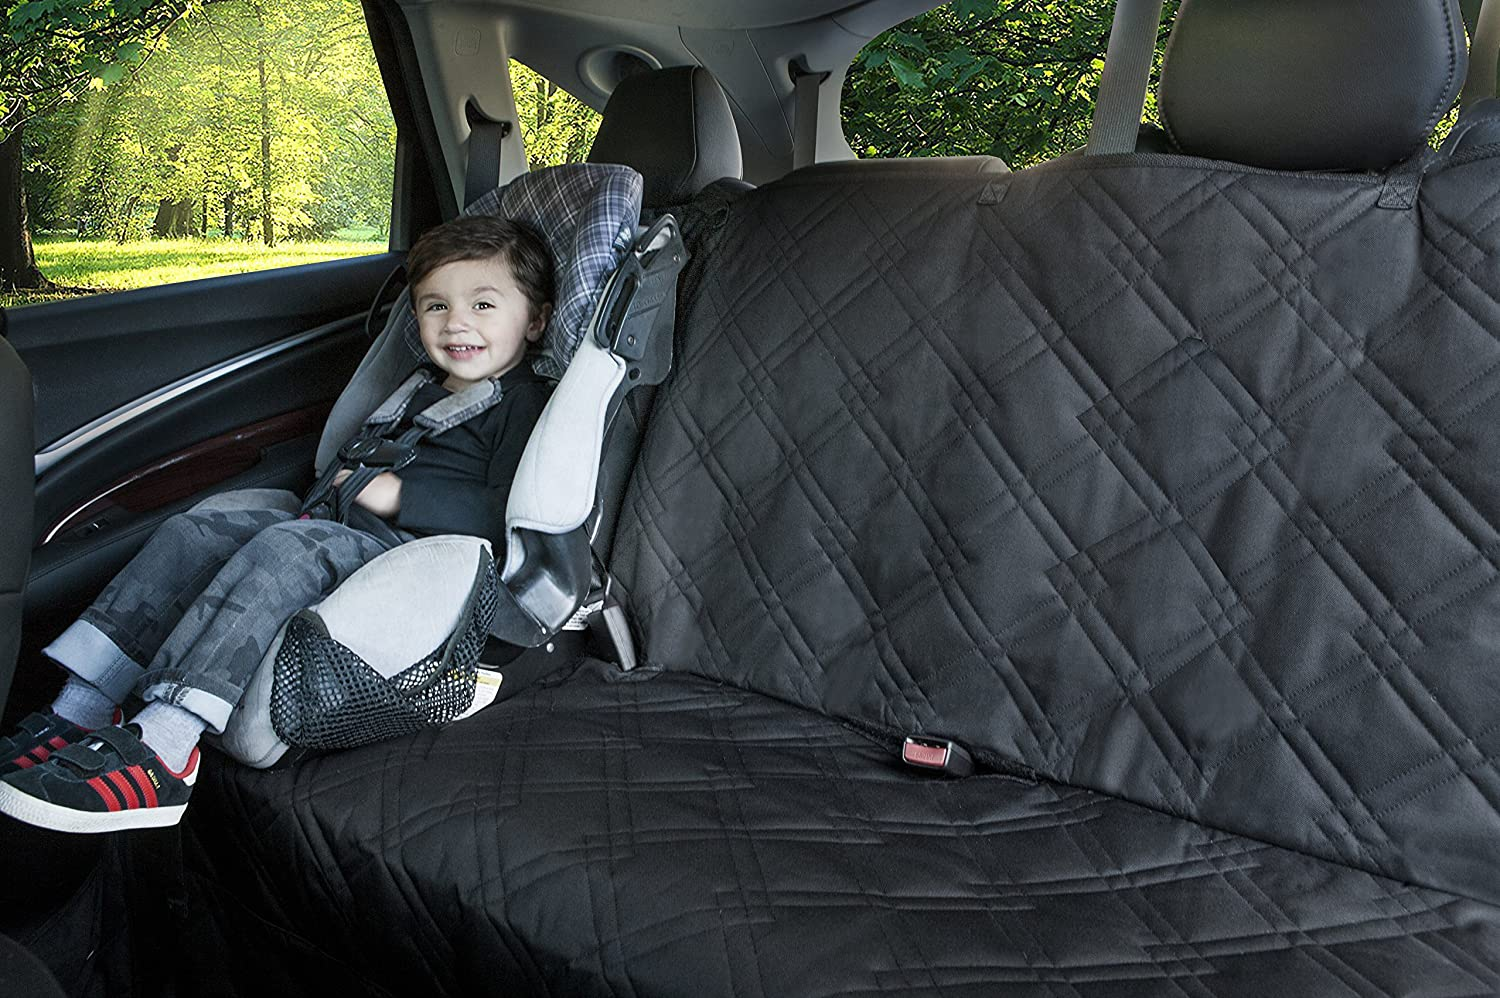 Bench Seat Protector For Infant Carseats - Catch Crumbs & Spills. Lifelong Promise (Black). Also Available In Black Middle Zipper.